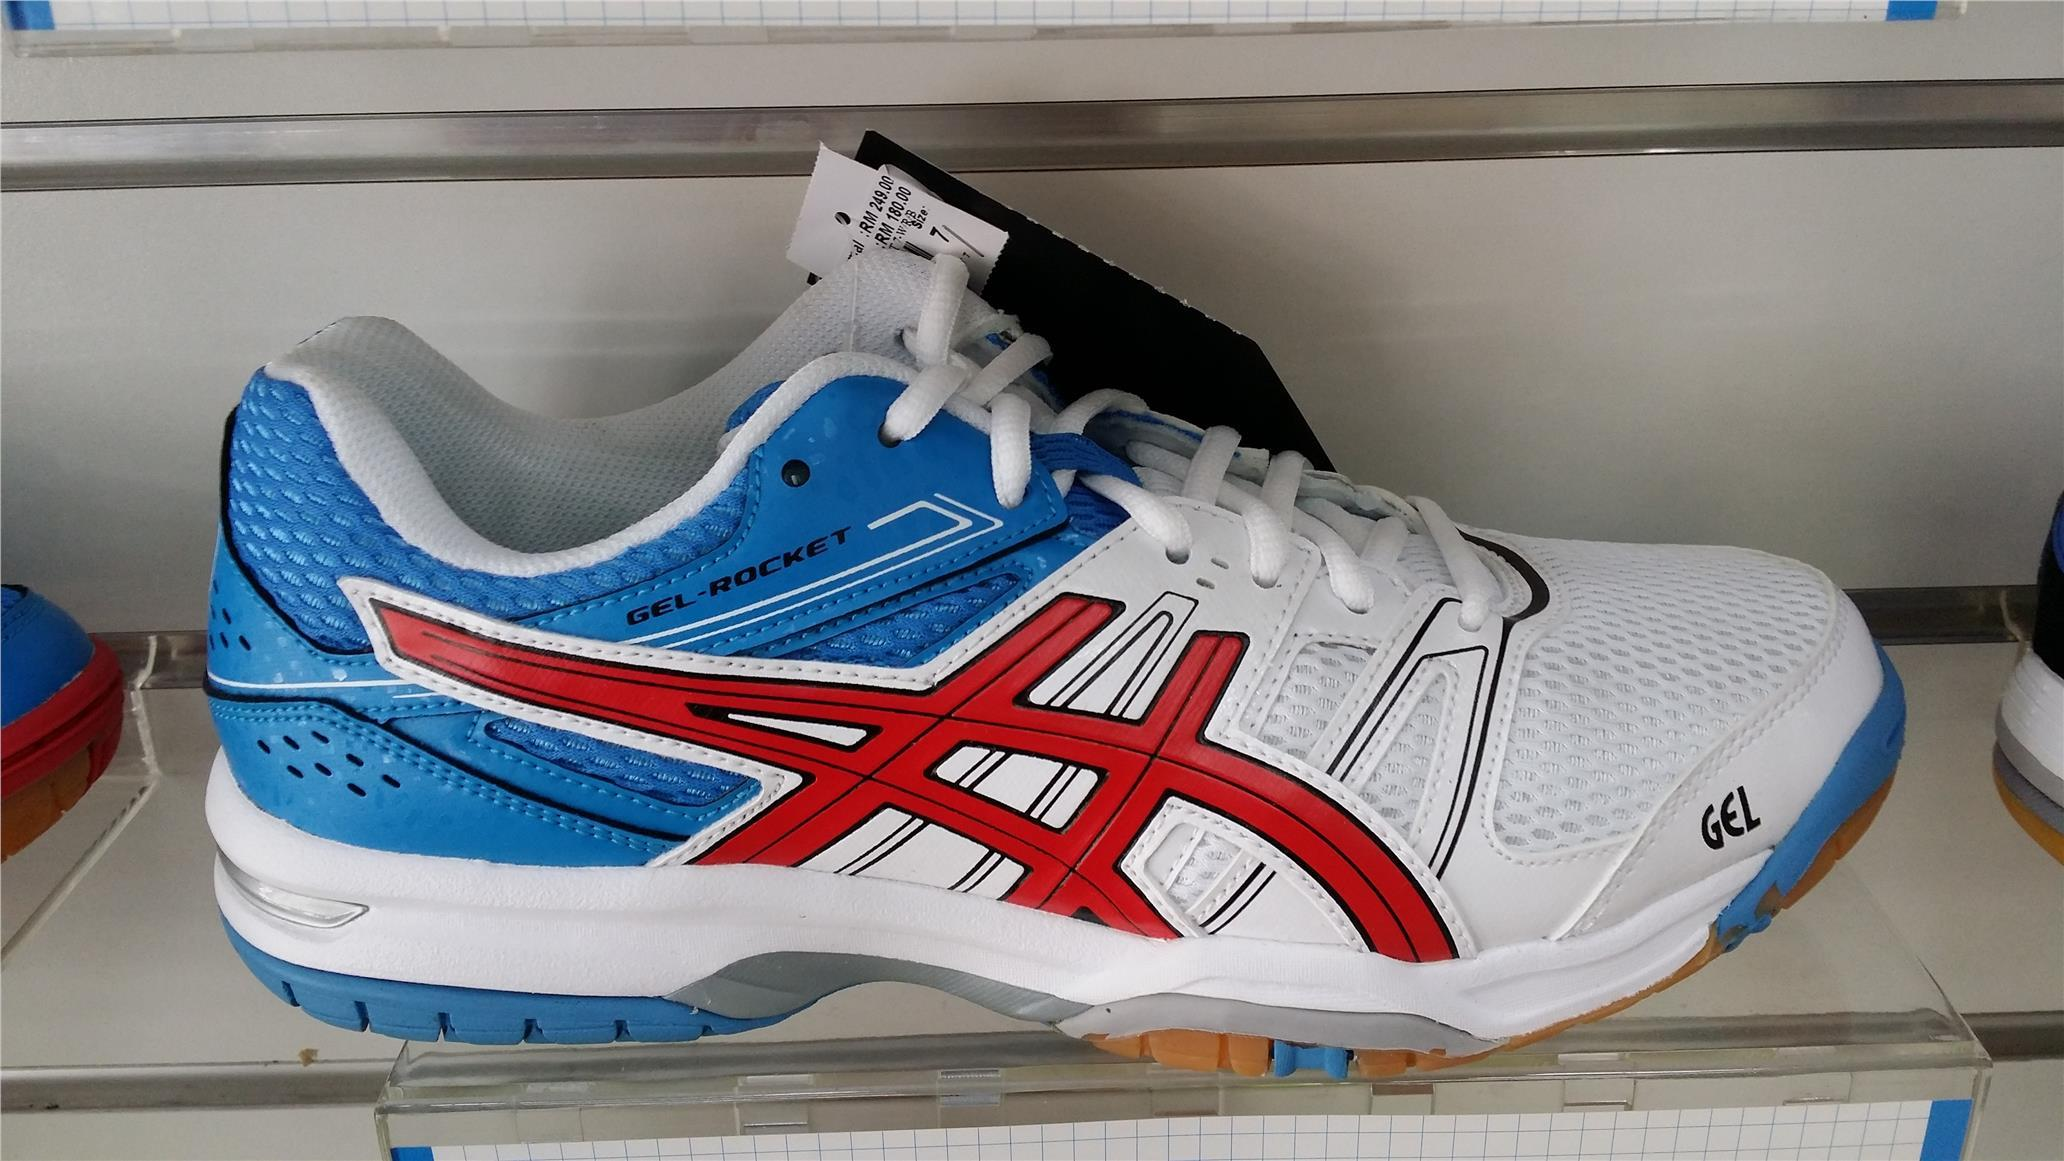 asics-gel-rocket-7-white-red-blue